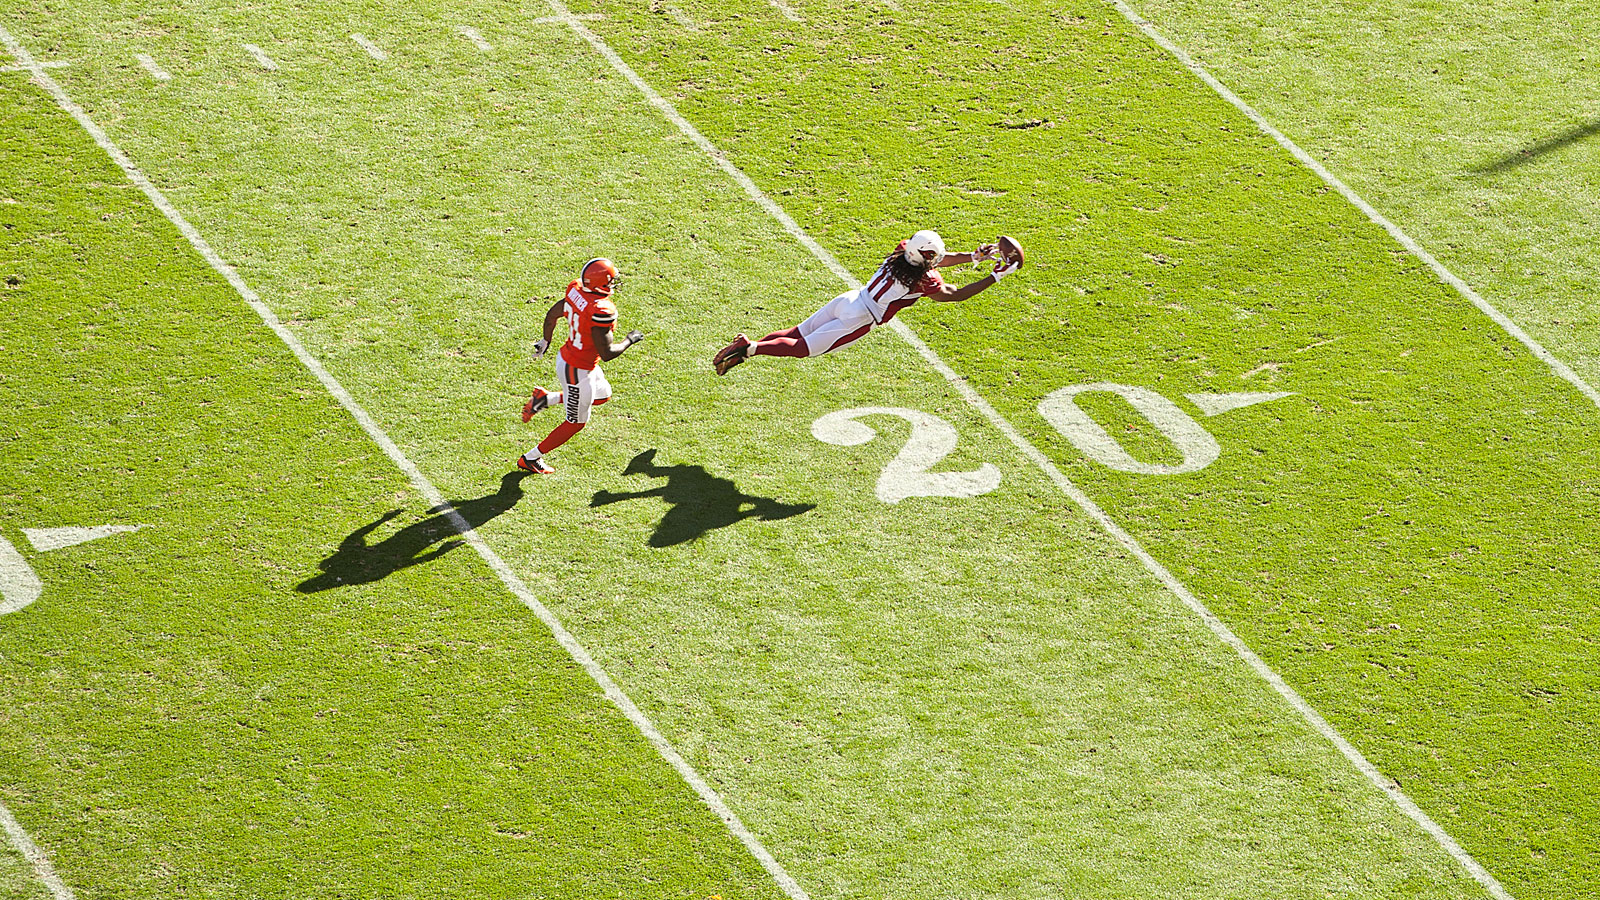 Larry Fitzgerald goes all on on the Home Run ball against the Browns.